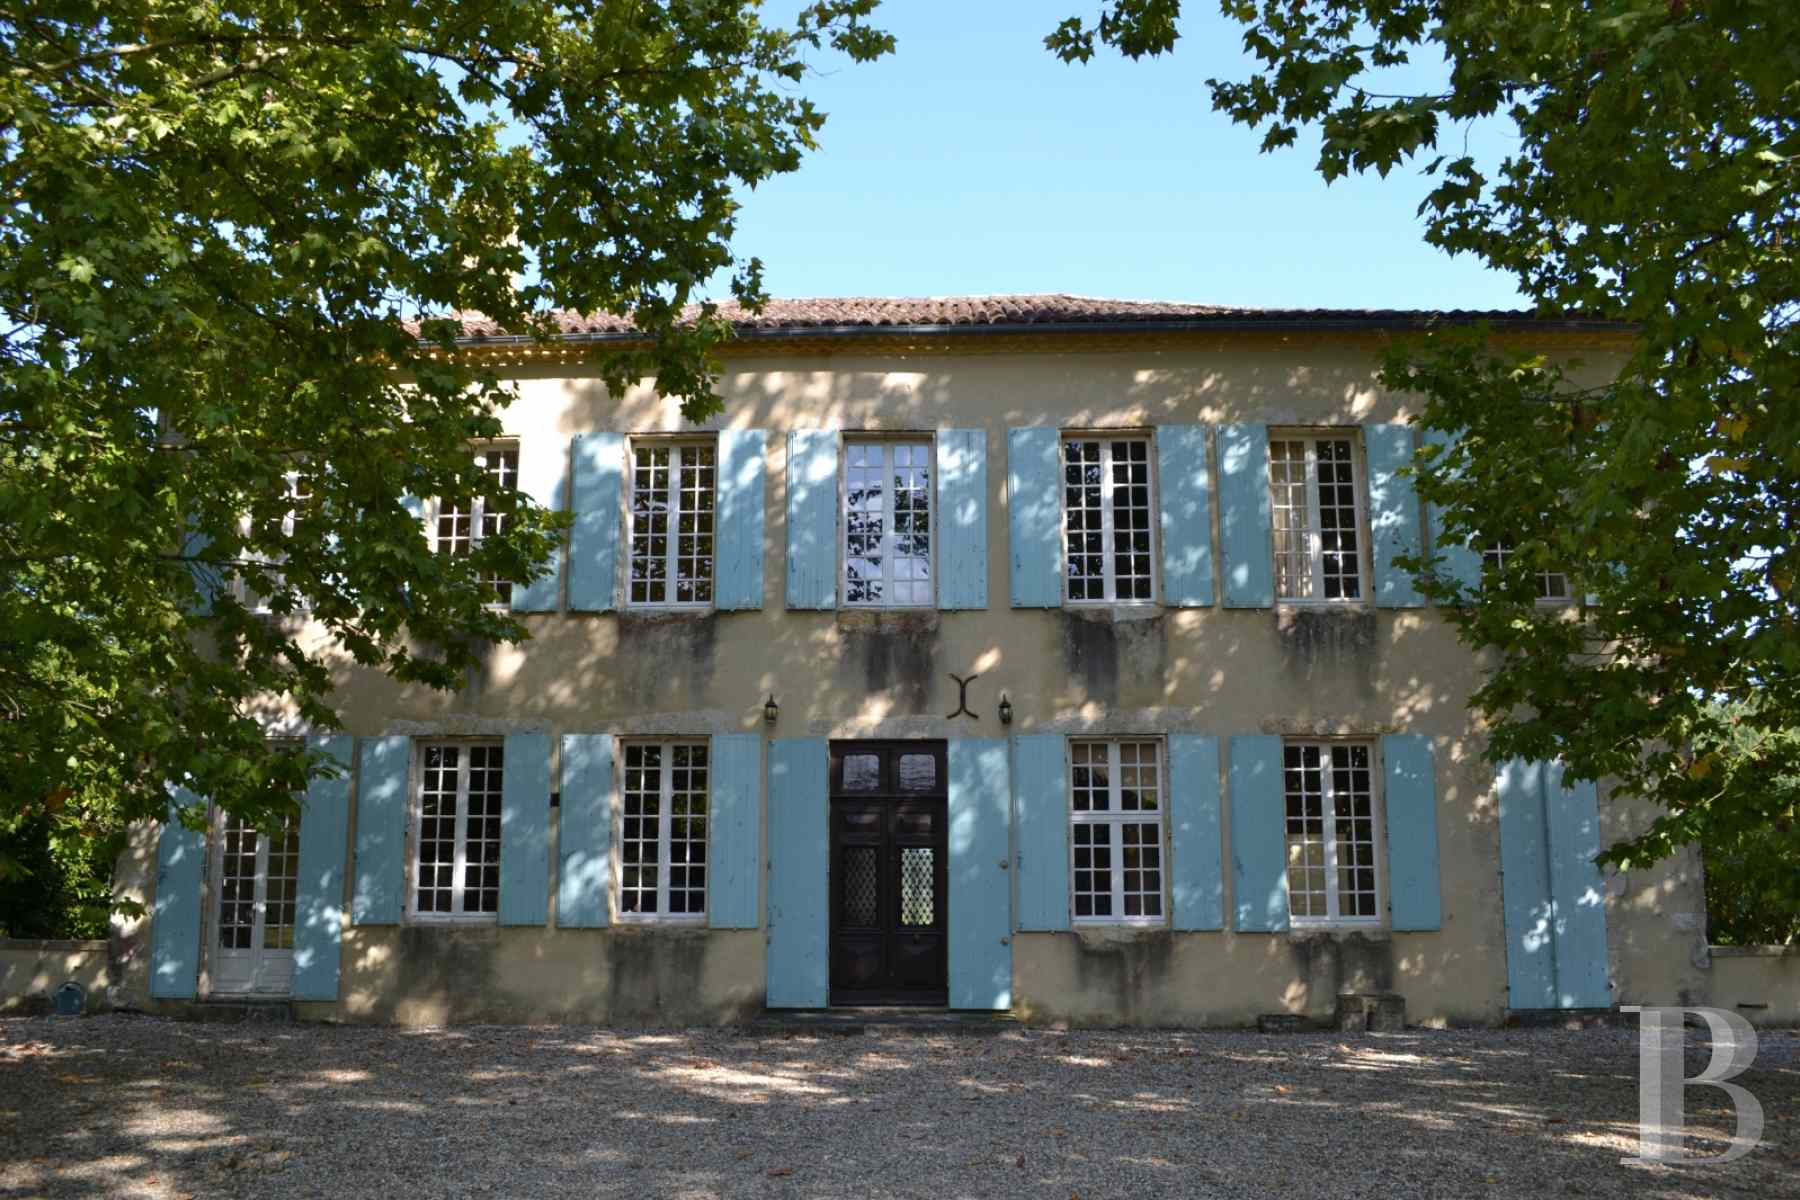 property for sale France aquitaine gascony armagnac - 5 zoom